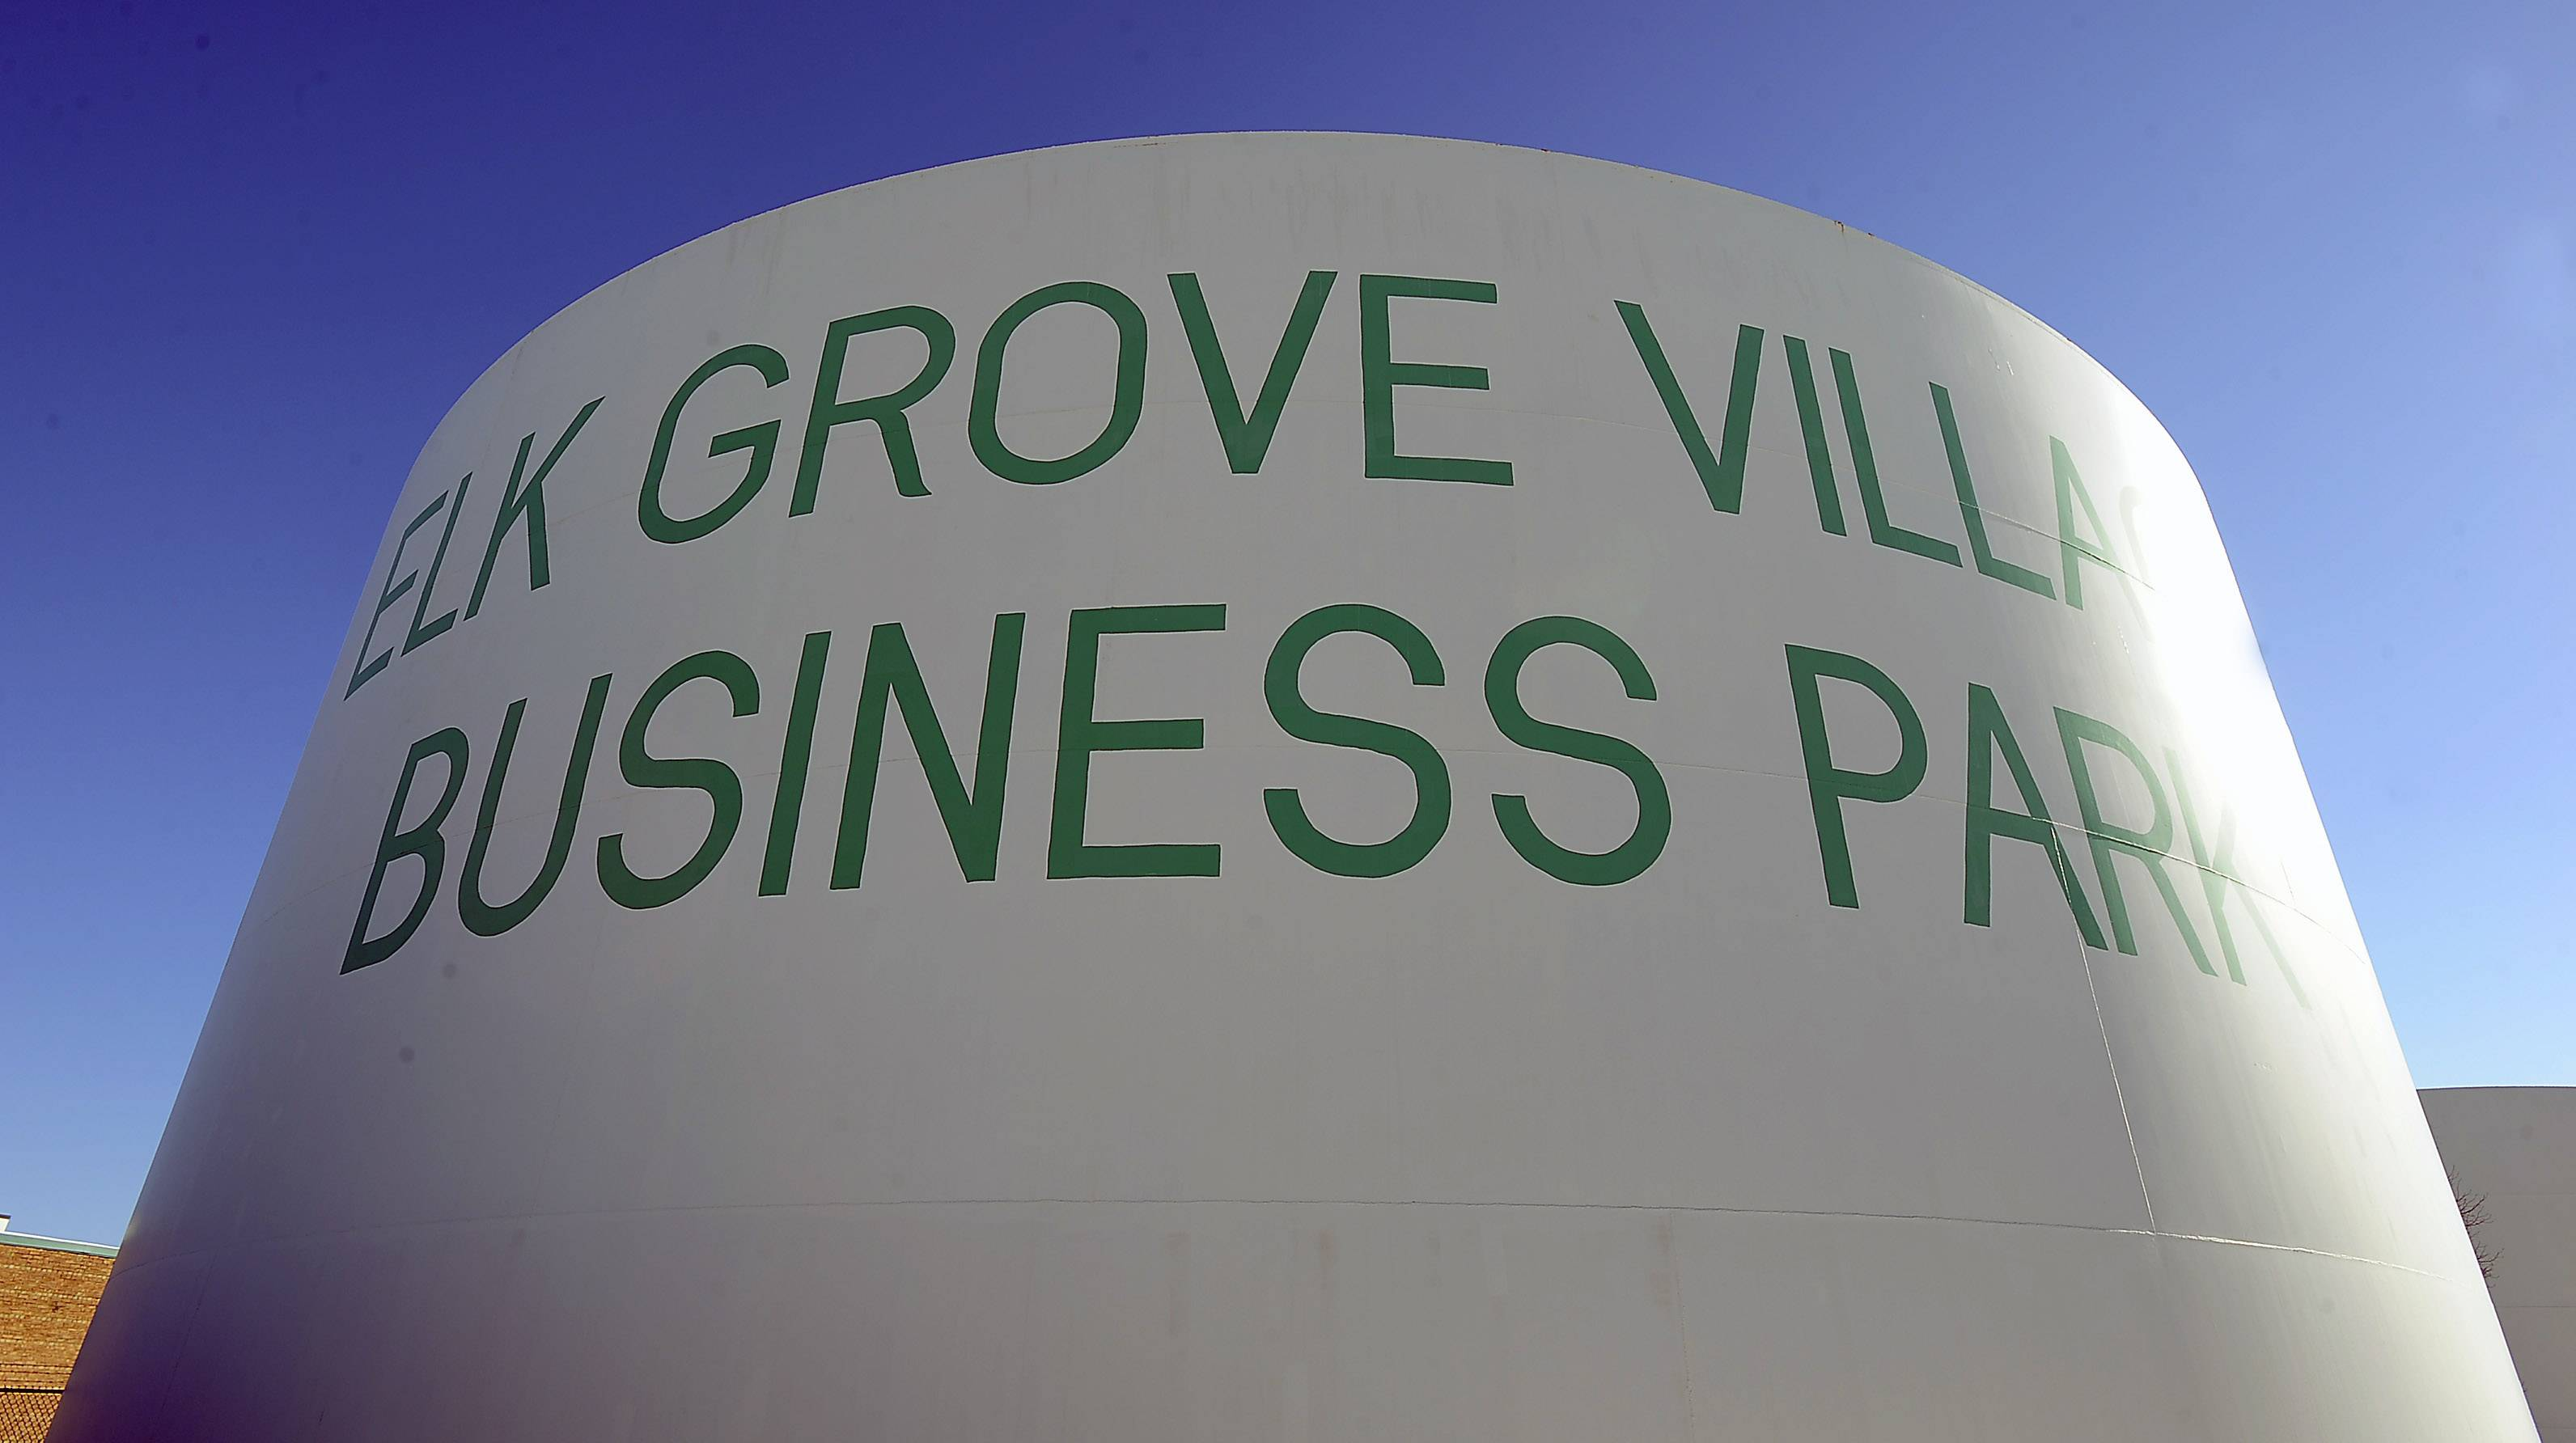 Elk Grove Village officials hope the Makers Wanted Bahamas Bowl sponsorship leads to more tenants at this business park.